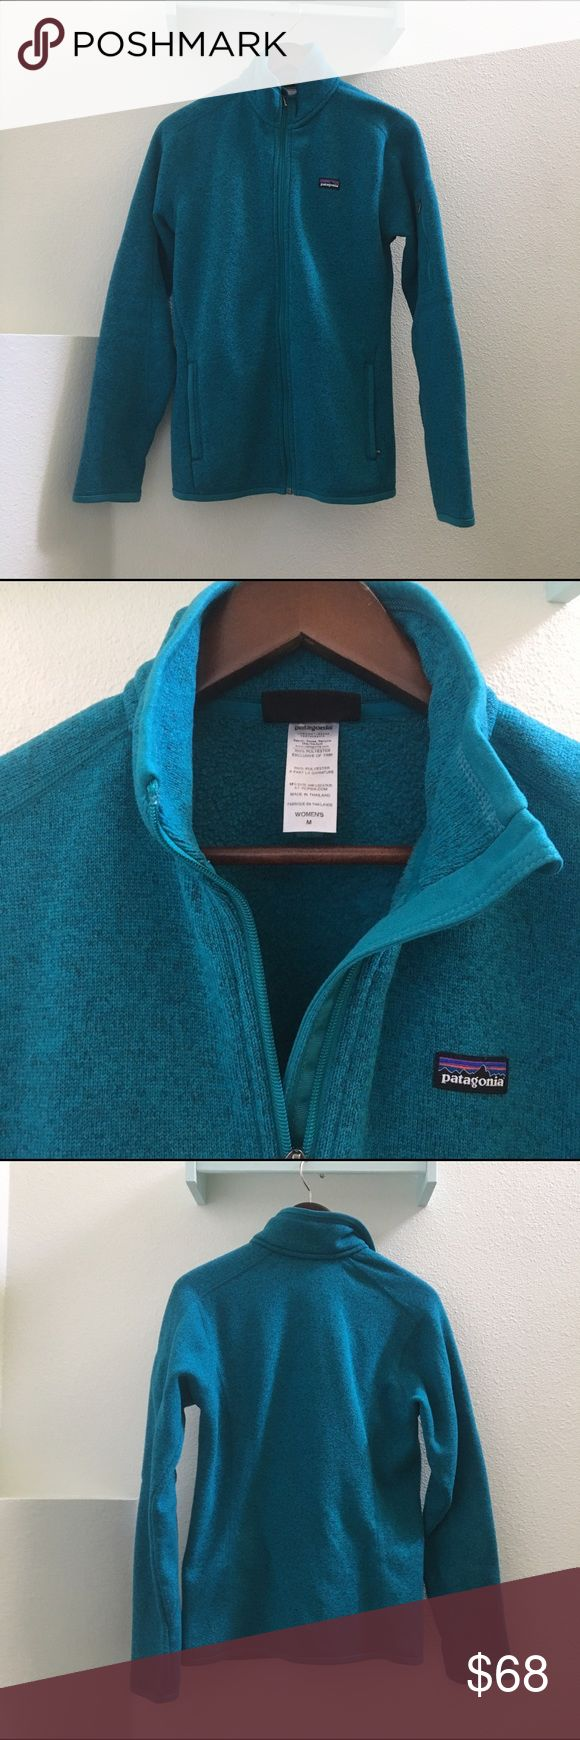 Patagonia women's zip up sweater NO TRADES!   Patagonia women's better sweater in a past season color. Size medium. Sweater is in excellent condition with the exception of some piling on the sleeves. This is a great quality sweater and I really hate giving it up   Smoke/pet free home, all sales final.  I have zero control of shipping once in the hands of USPS. Patagonia Sweaters